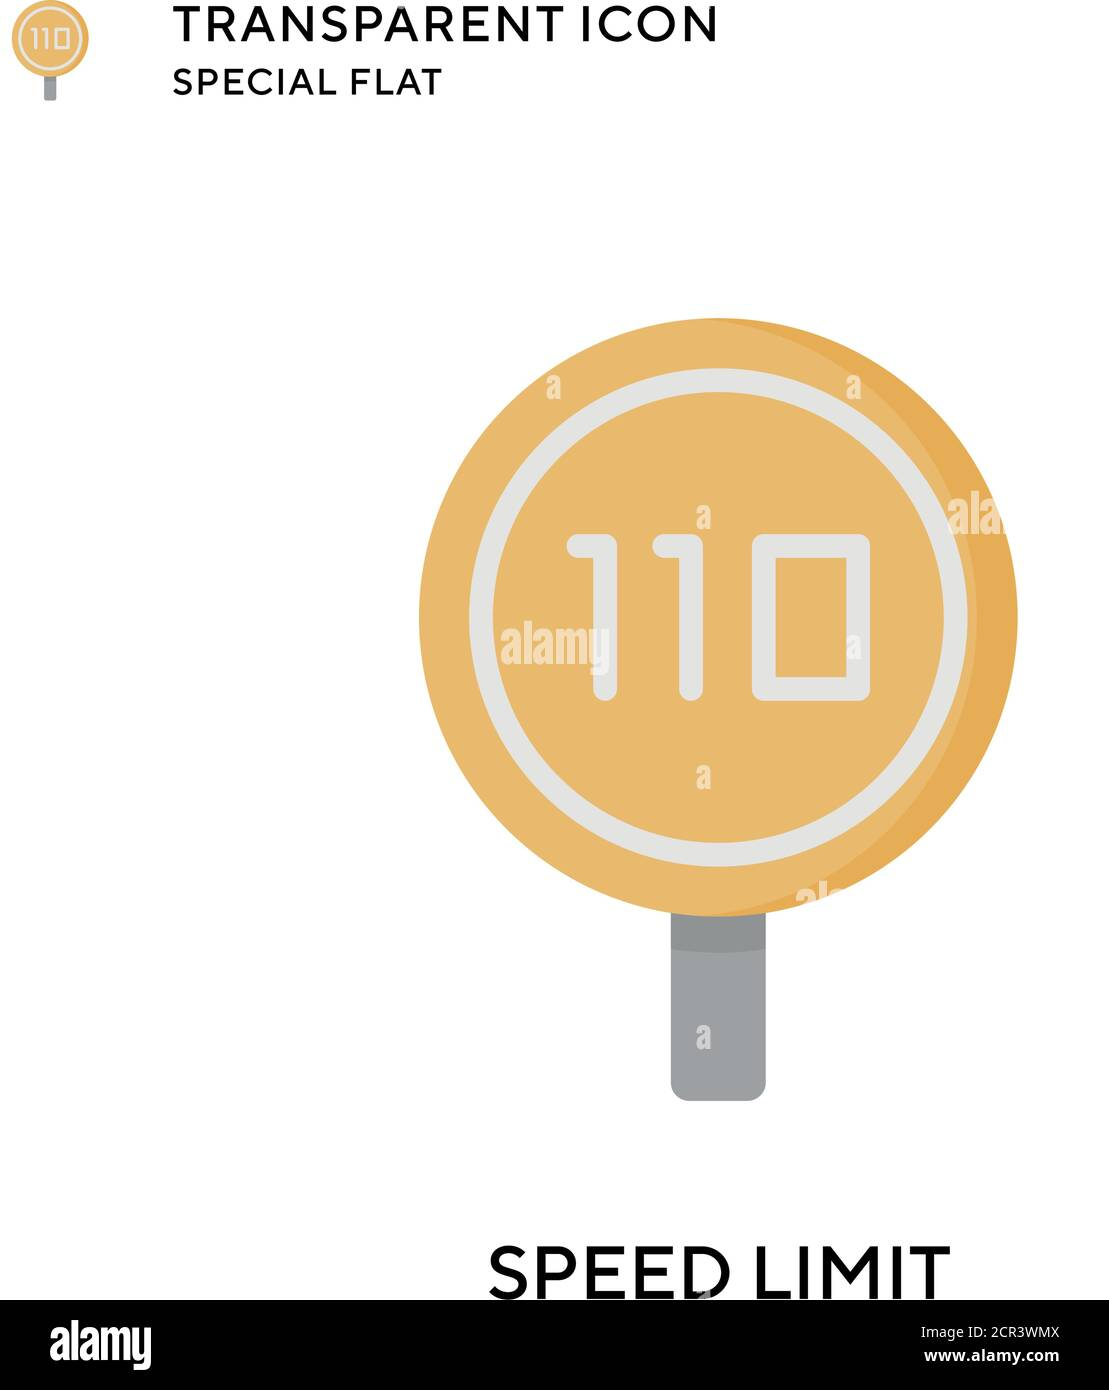 Speed limit vector icon. Flat style illustration. EPS 10 vector. Stock Vector